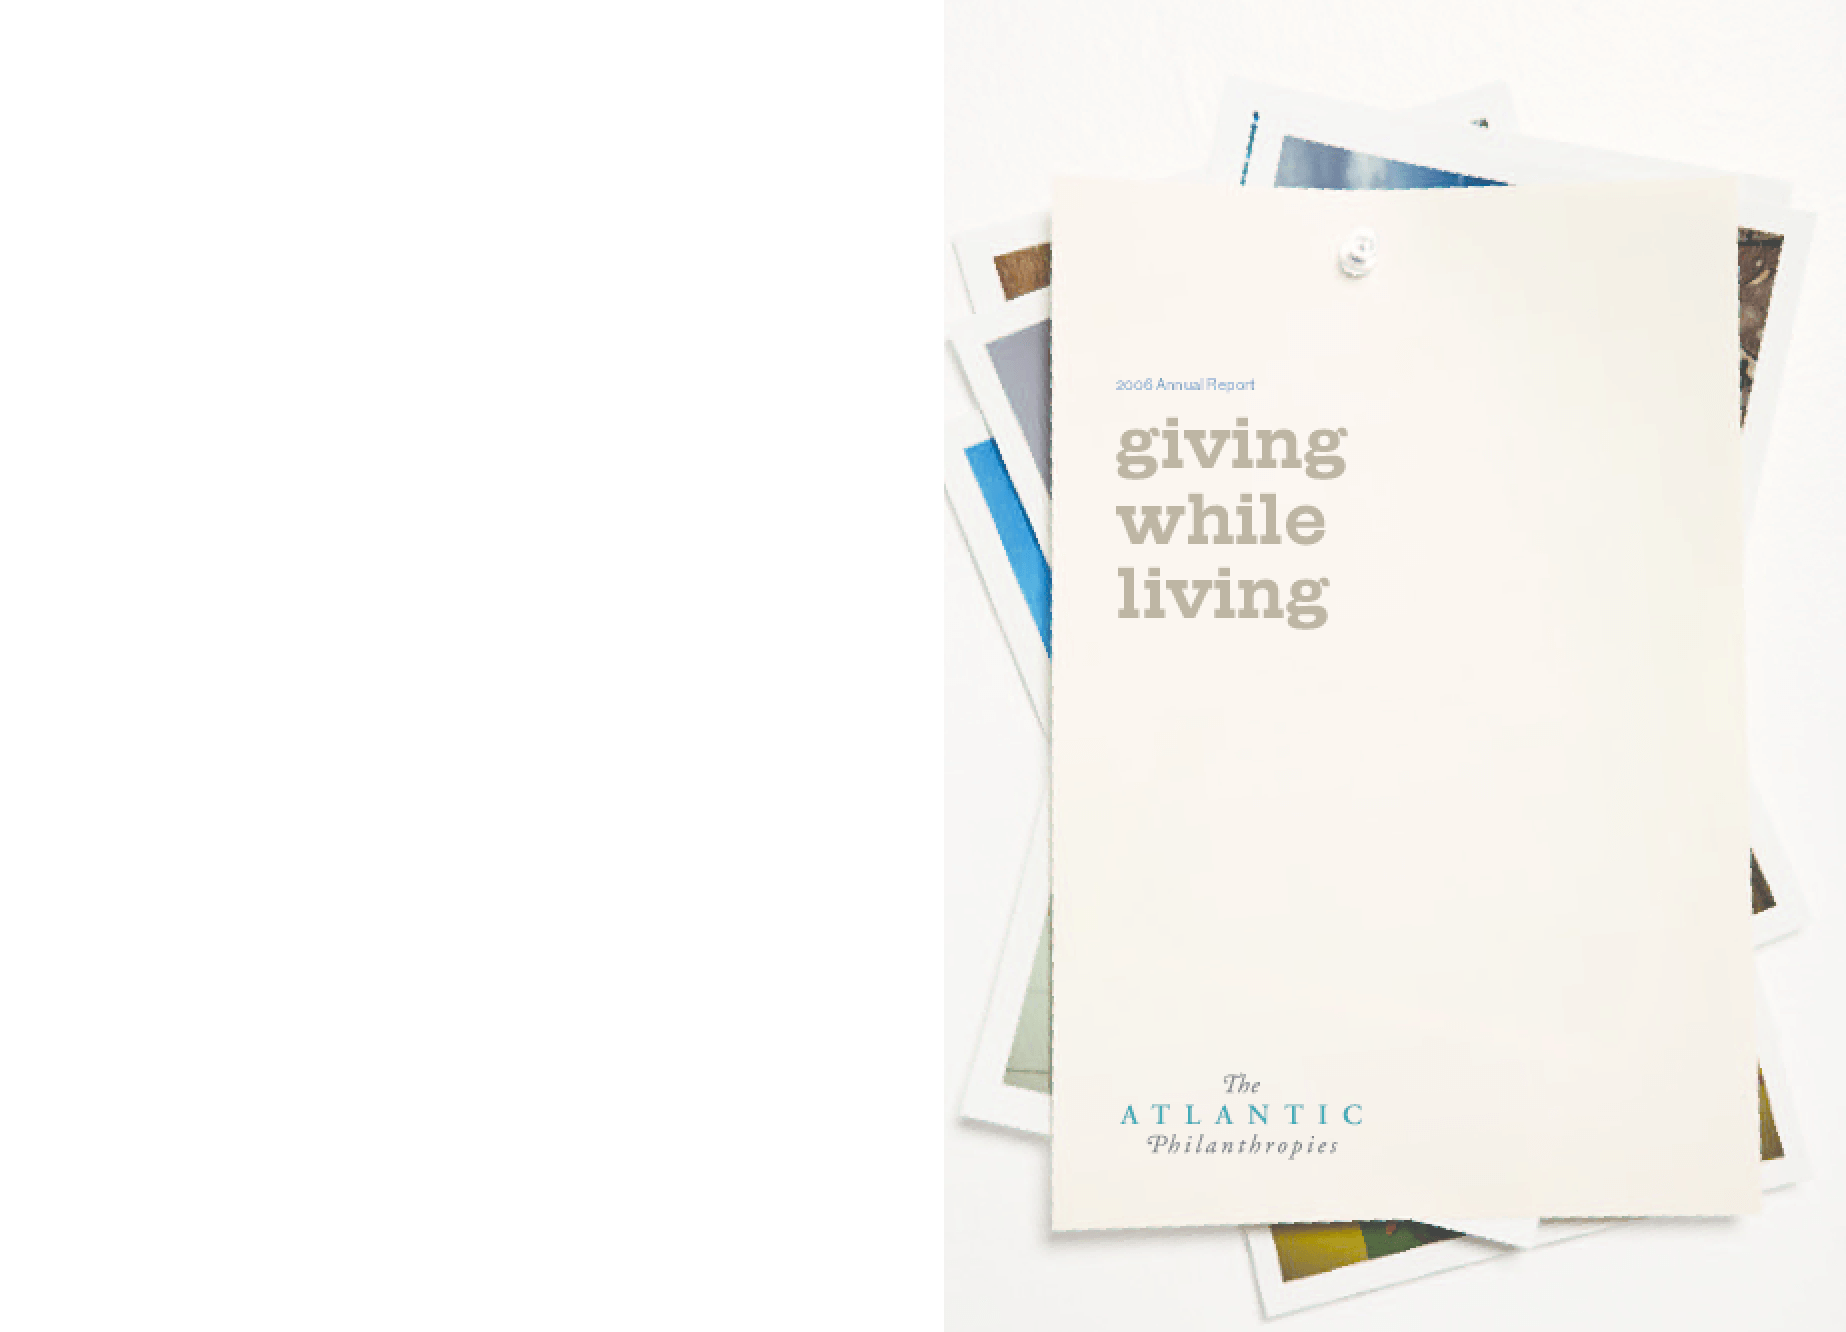 Atlantic Philanthropies - 2006 Annual Report: Giving While Living